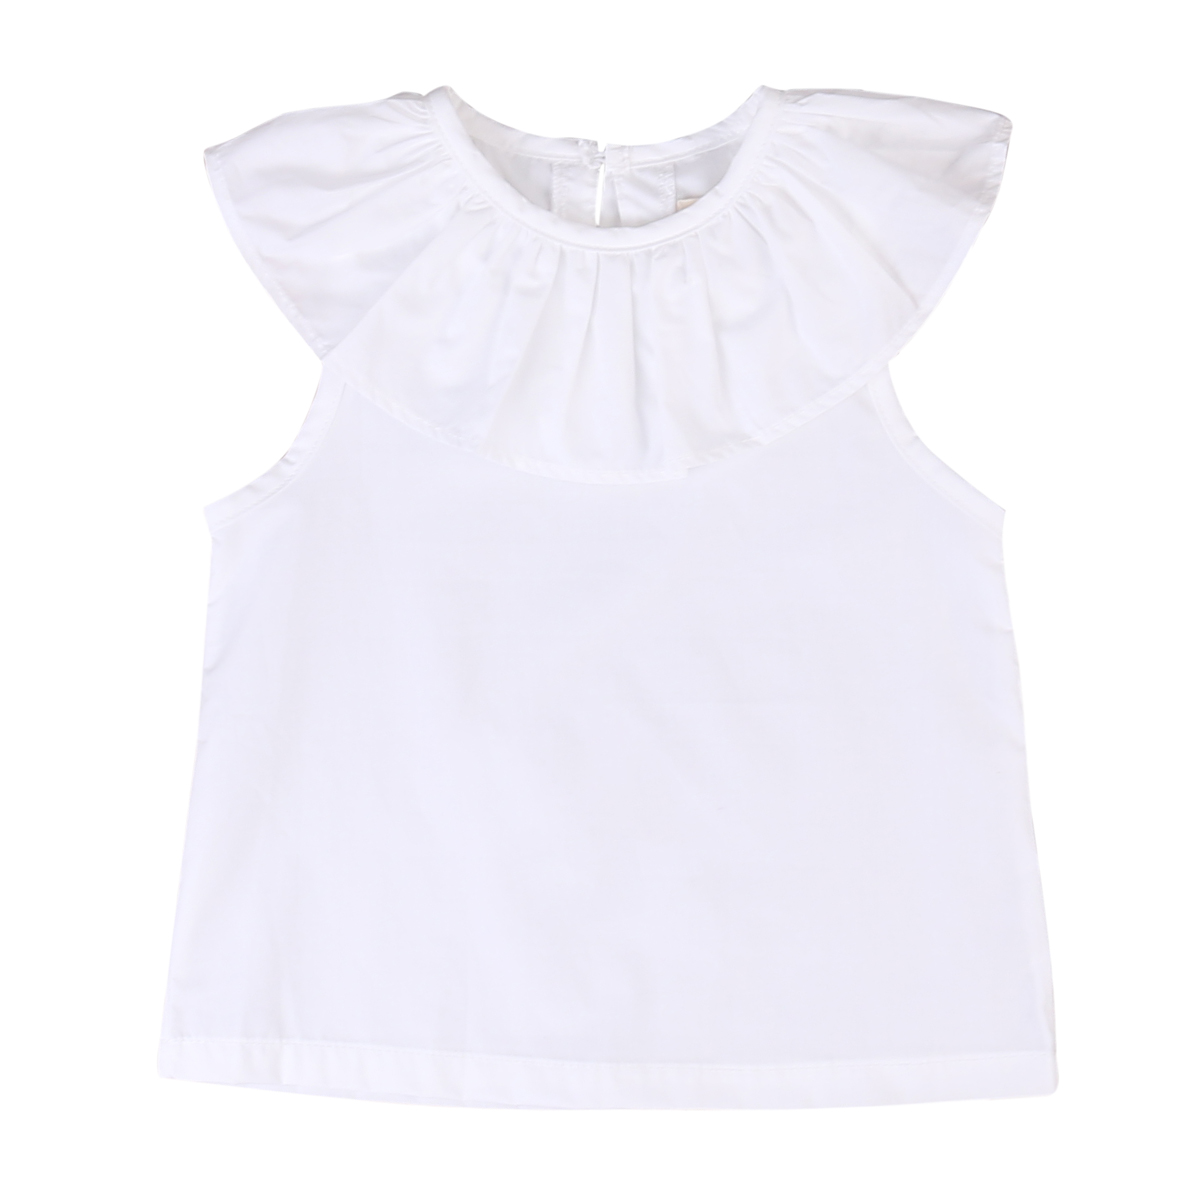 31a3cde43aae Kids Baby Princess Girls White Cotton Tops Lotus Leaf Sleeve Cotton ...